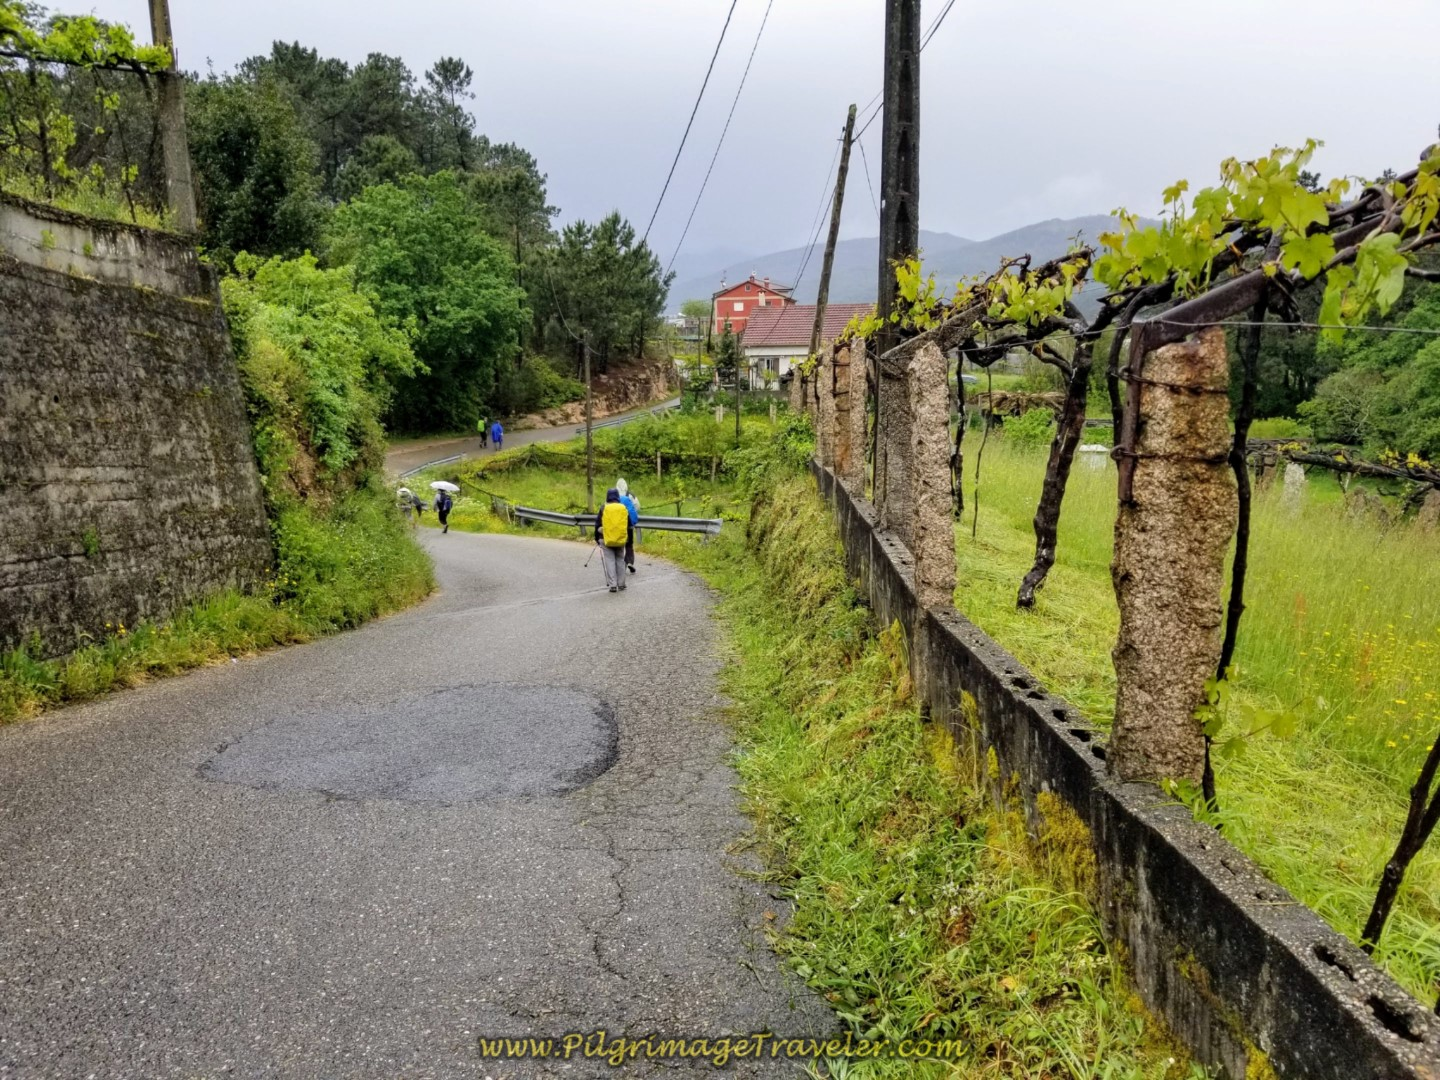 Nice downhill cruise on day twenty-one of the central route of the Portuguese Camino